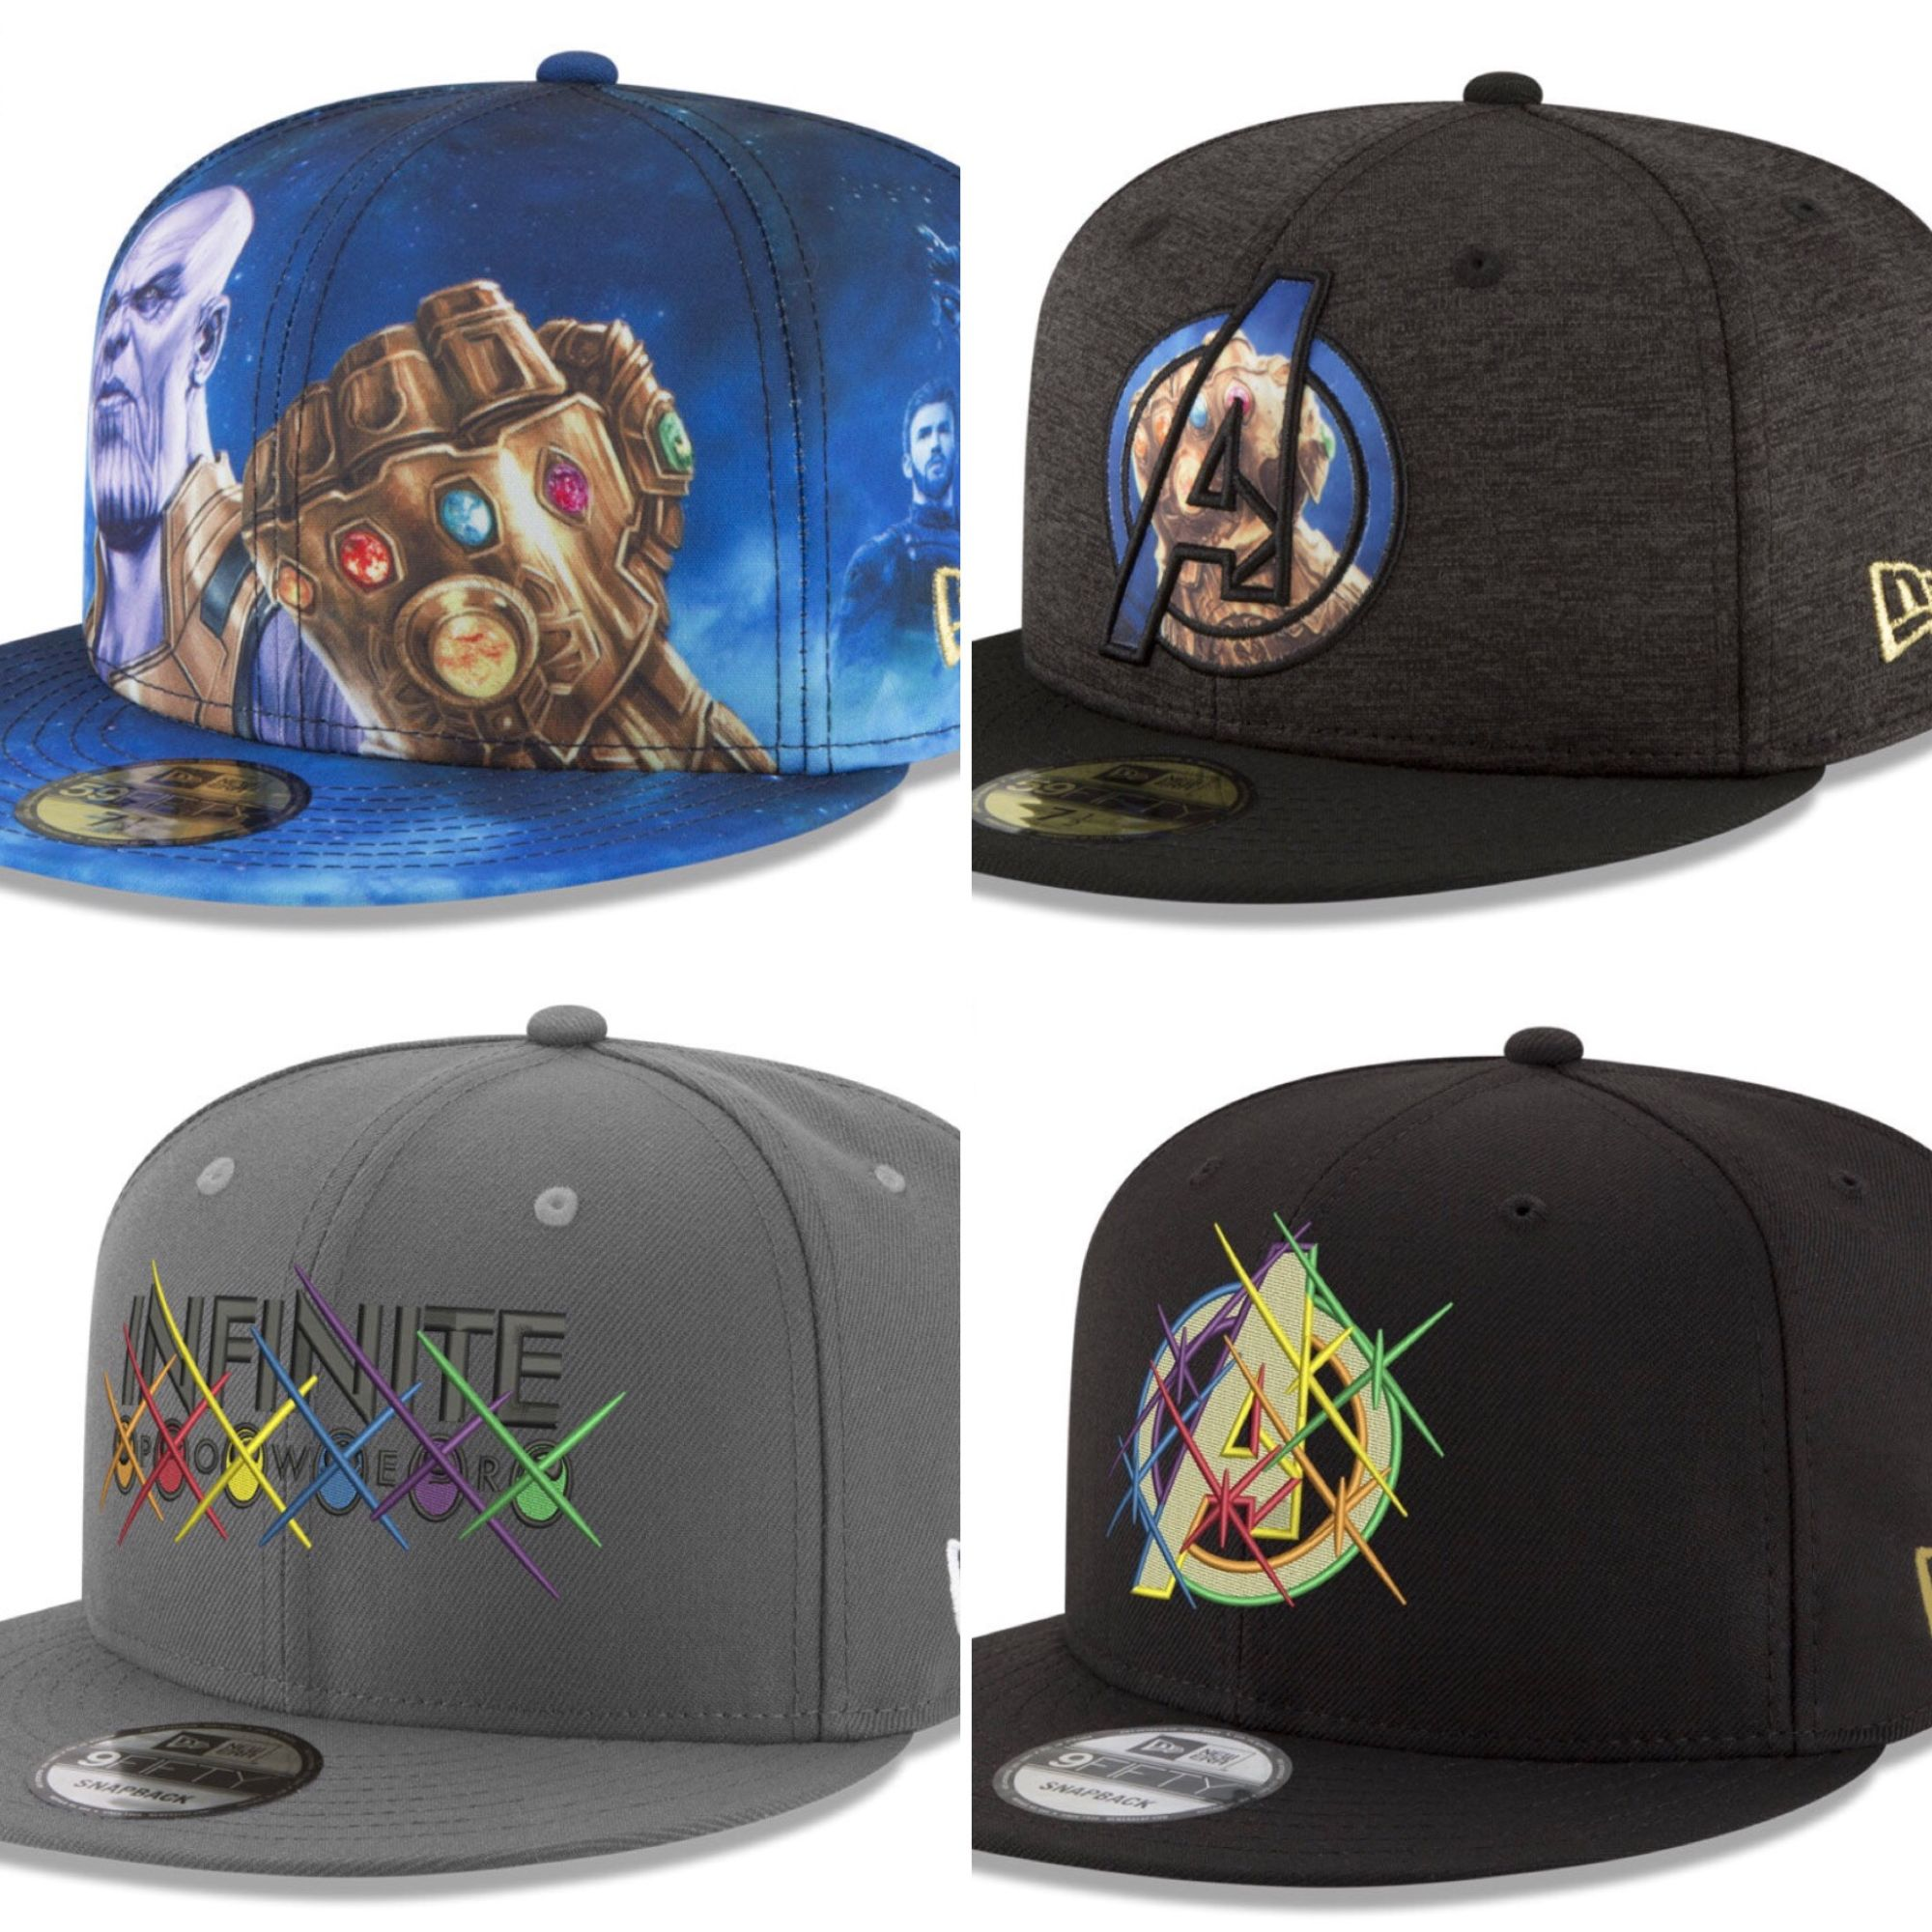 timeless design e1295 739b1 6 Avengers  Infinity War Hats from New Era and Lids in New Collection